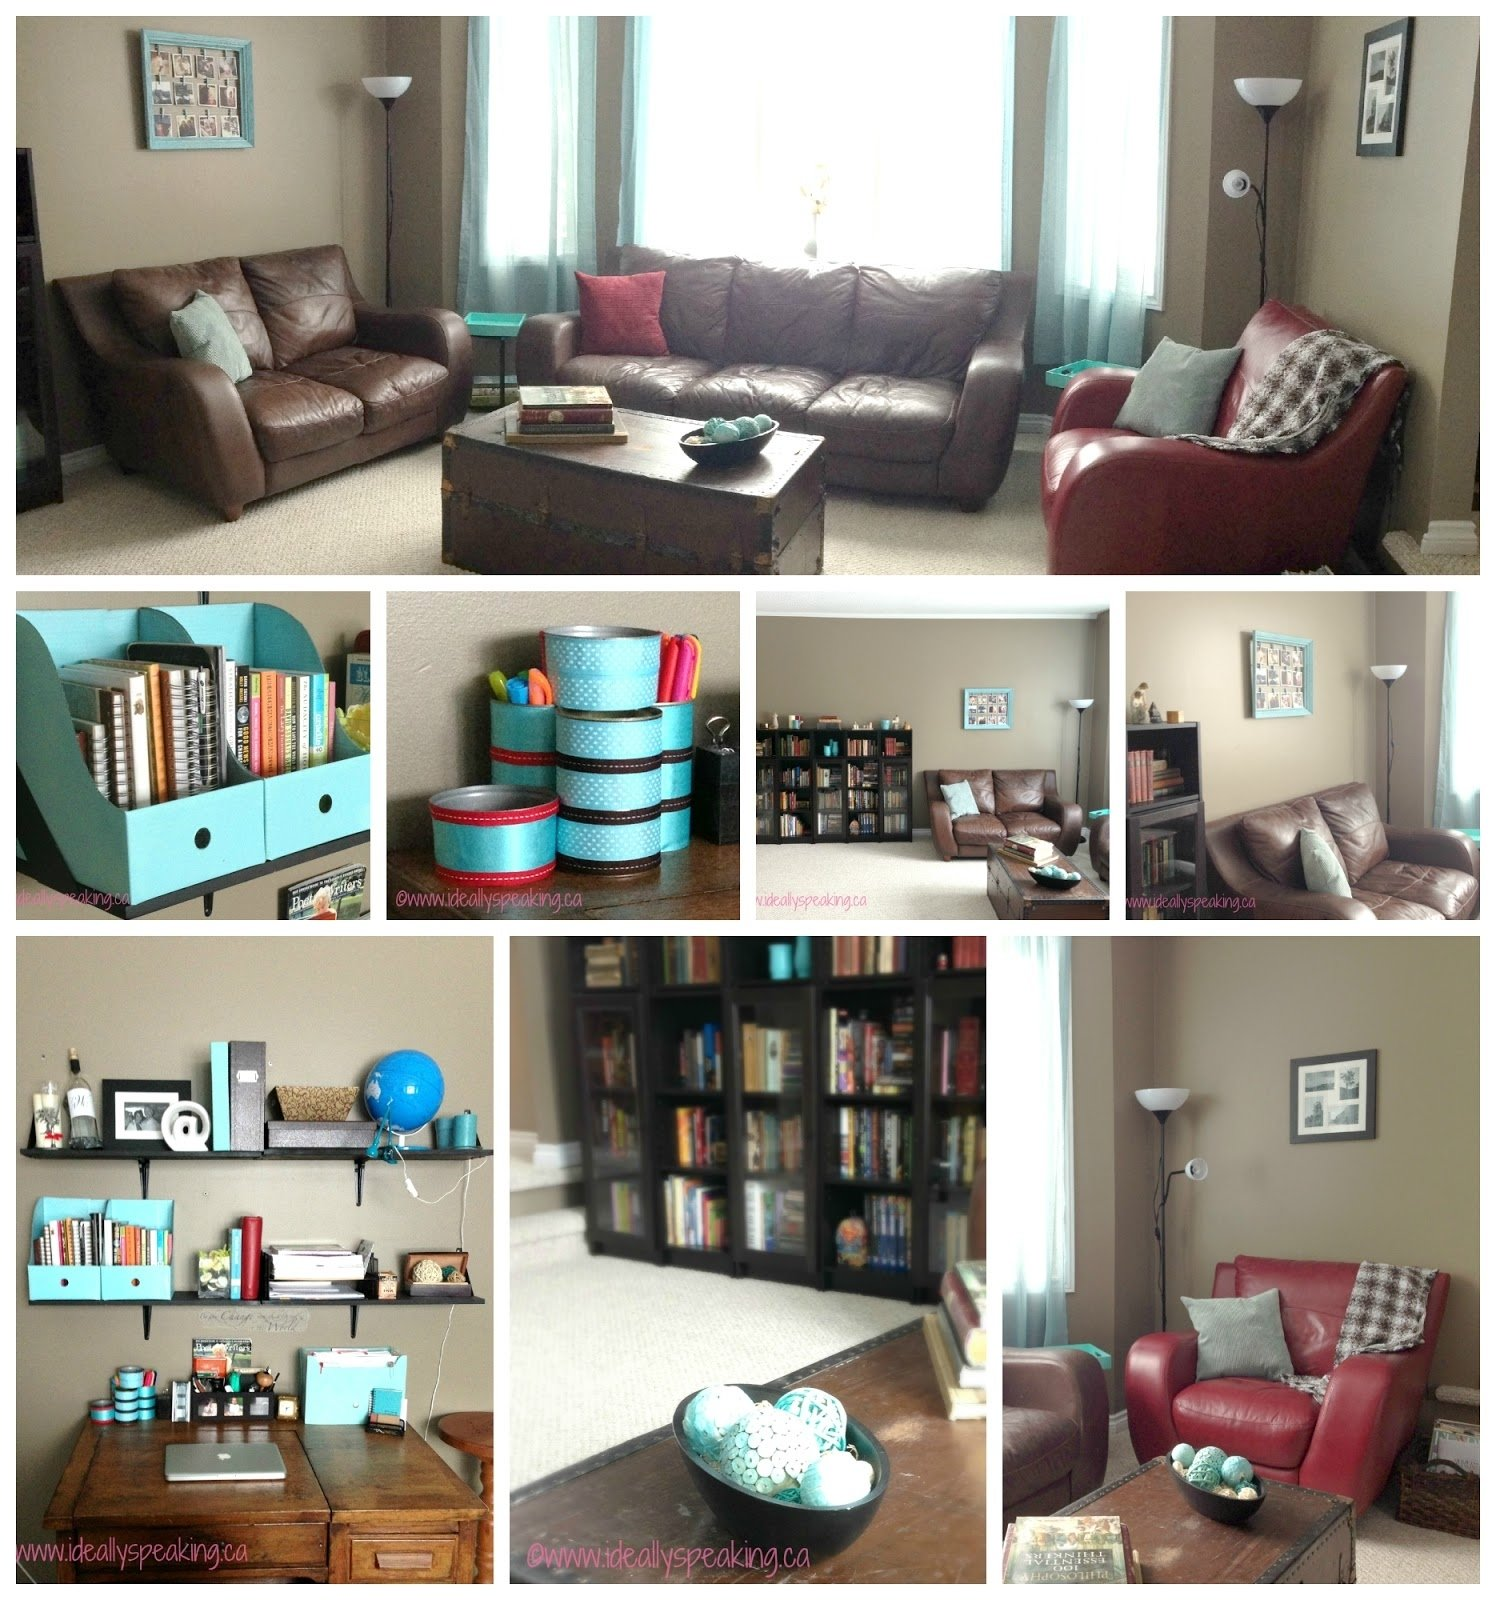 10 Cute Pinterest Decorating Ideas For Home home design image ideas home office ideas pinterest together with 2020